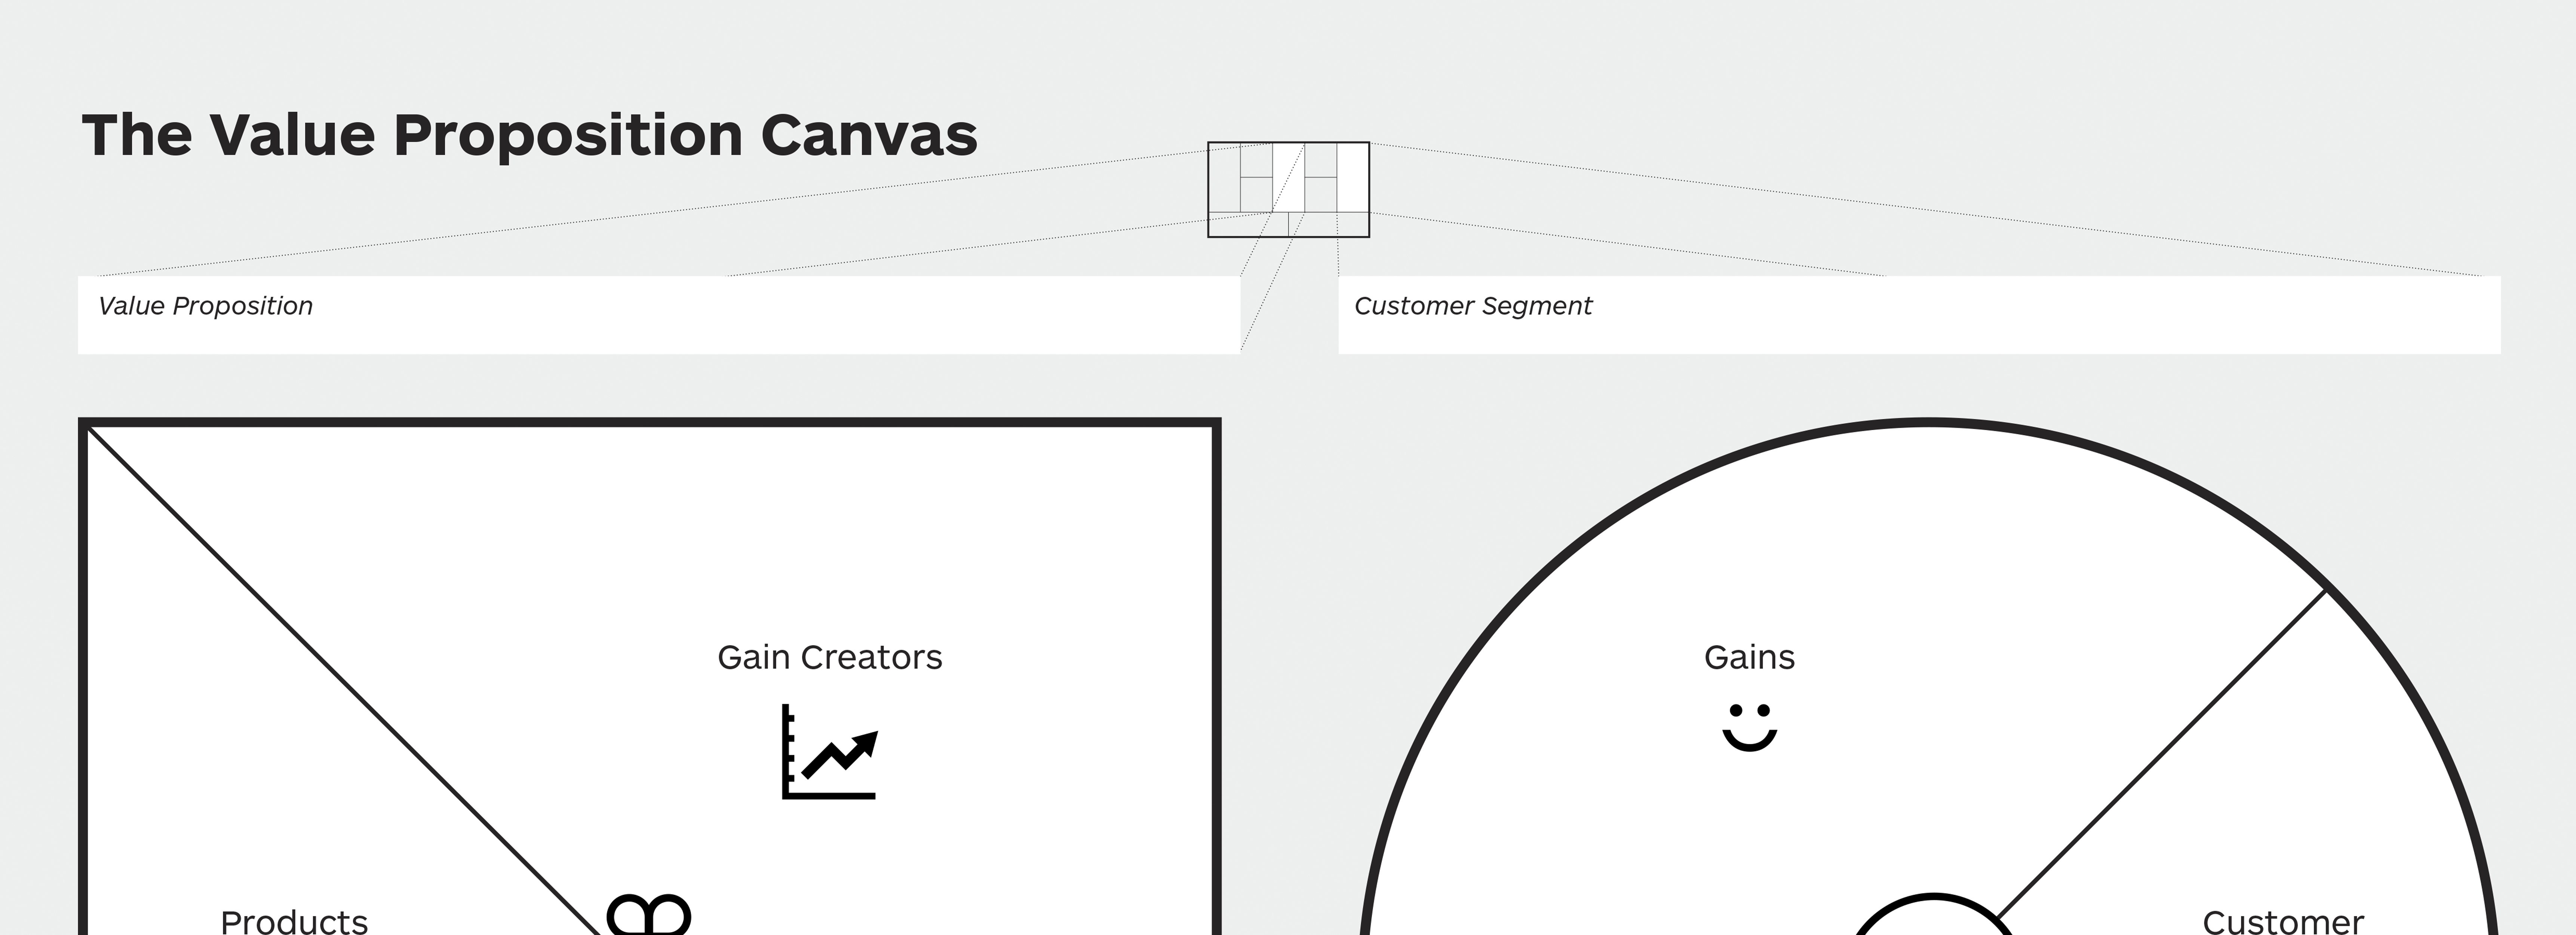 Value Proposition Canvas Download The Official Template